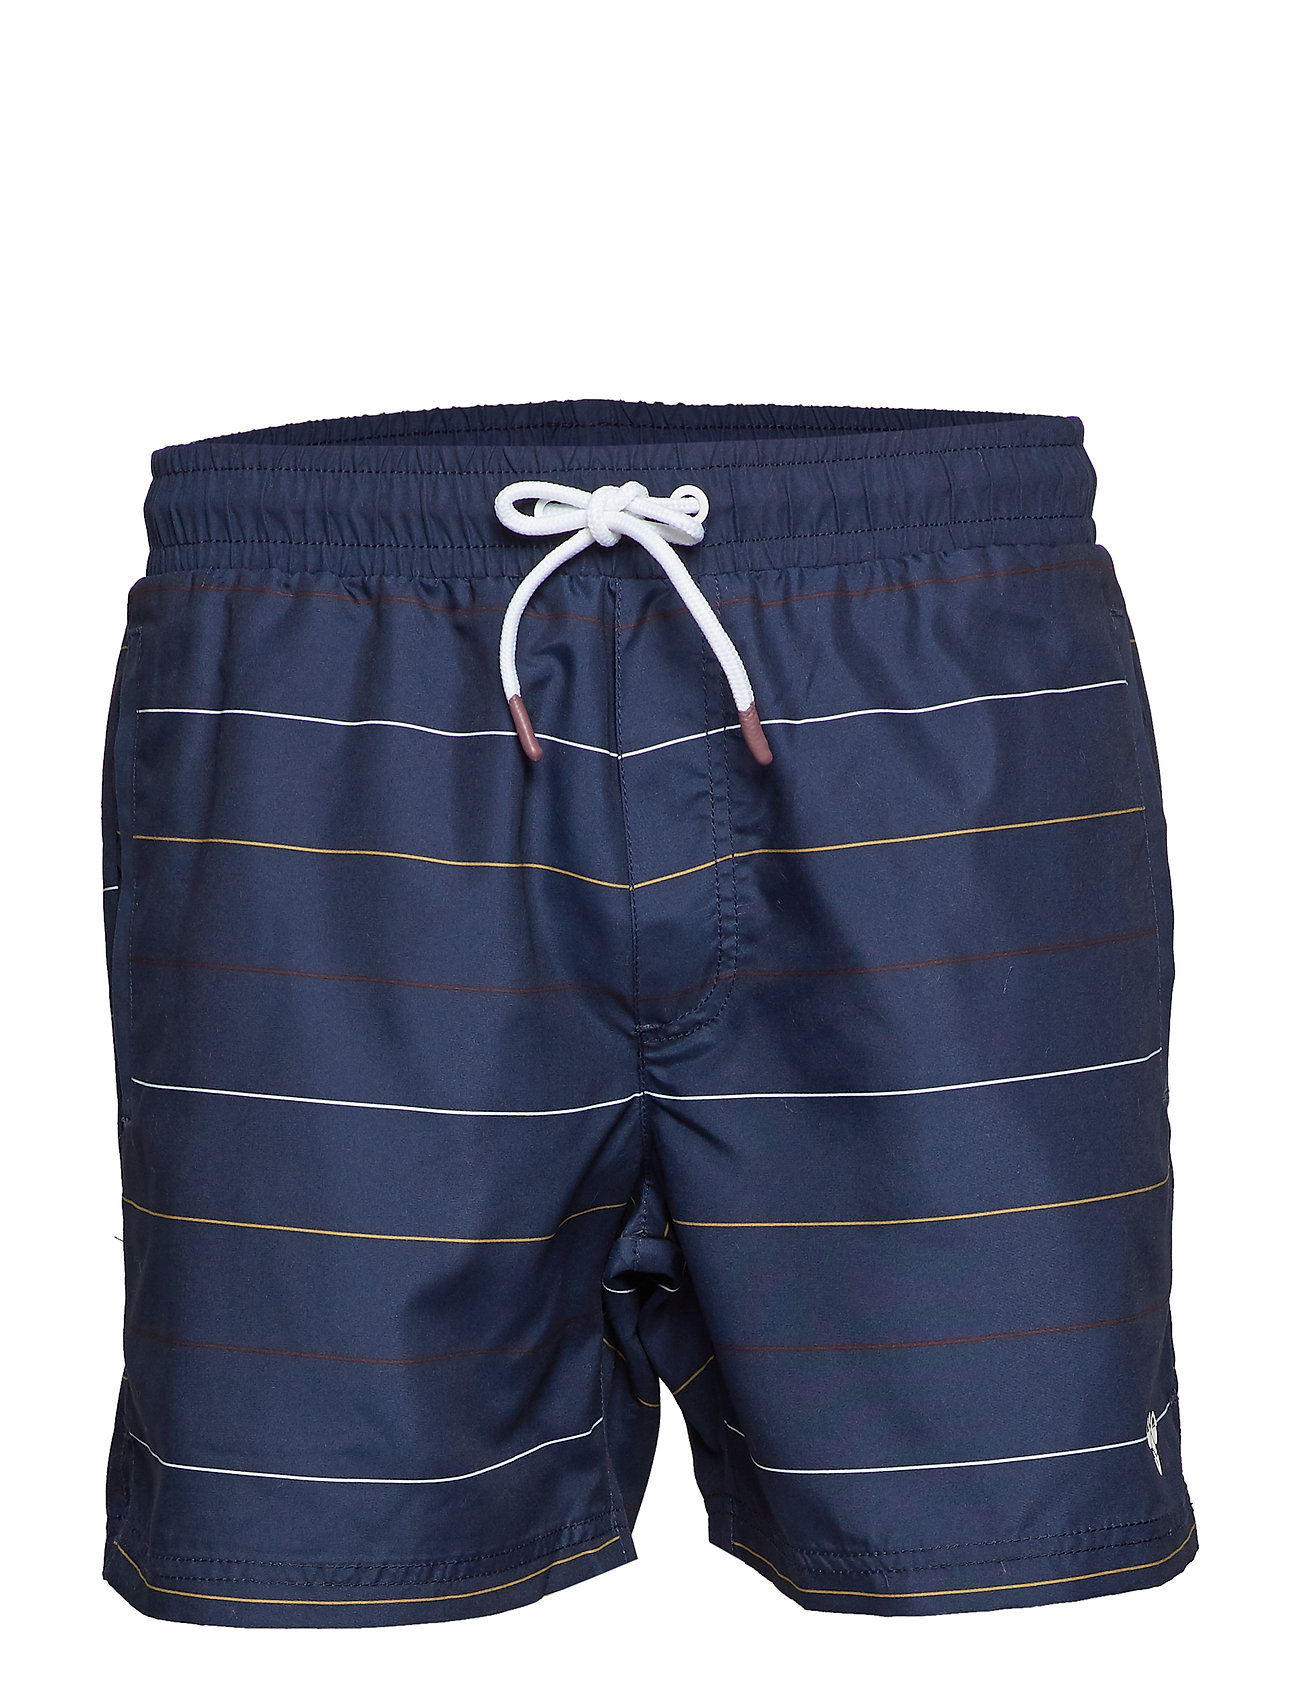 Hummel HMLRALE BOARD SHORTS - BLACK IRIS